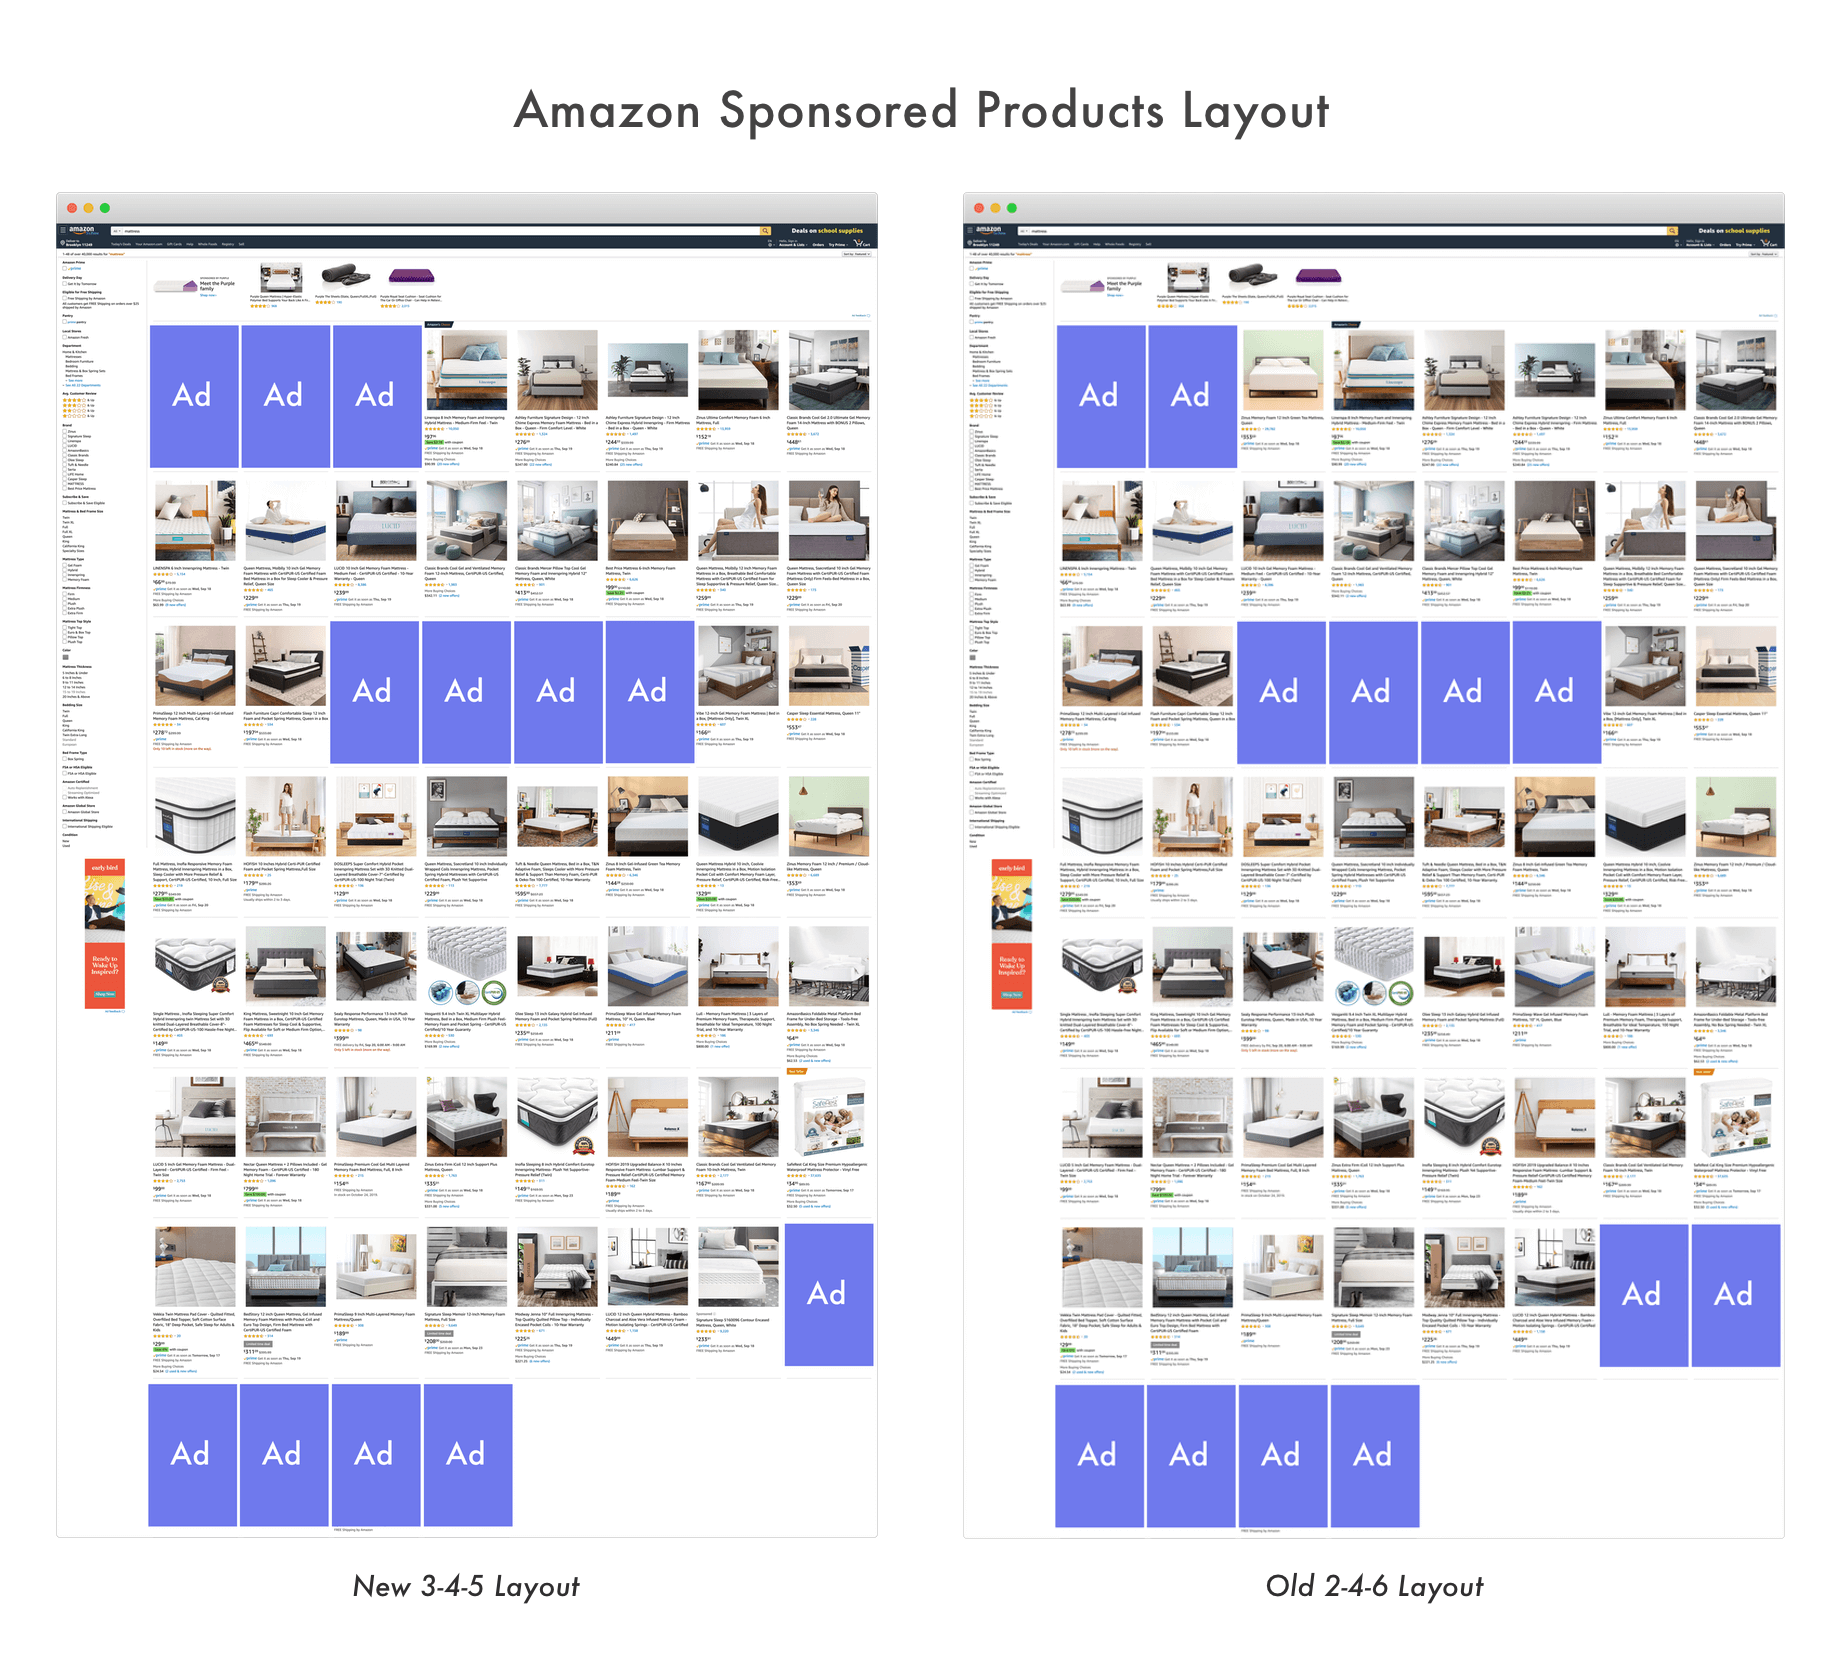 Amazon Sponsored Products Layout